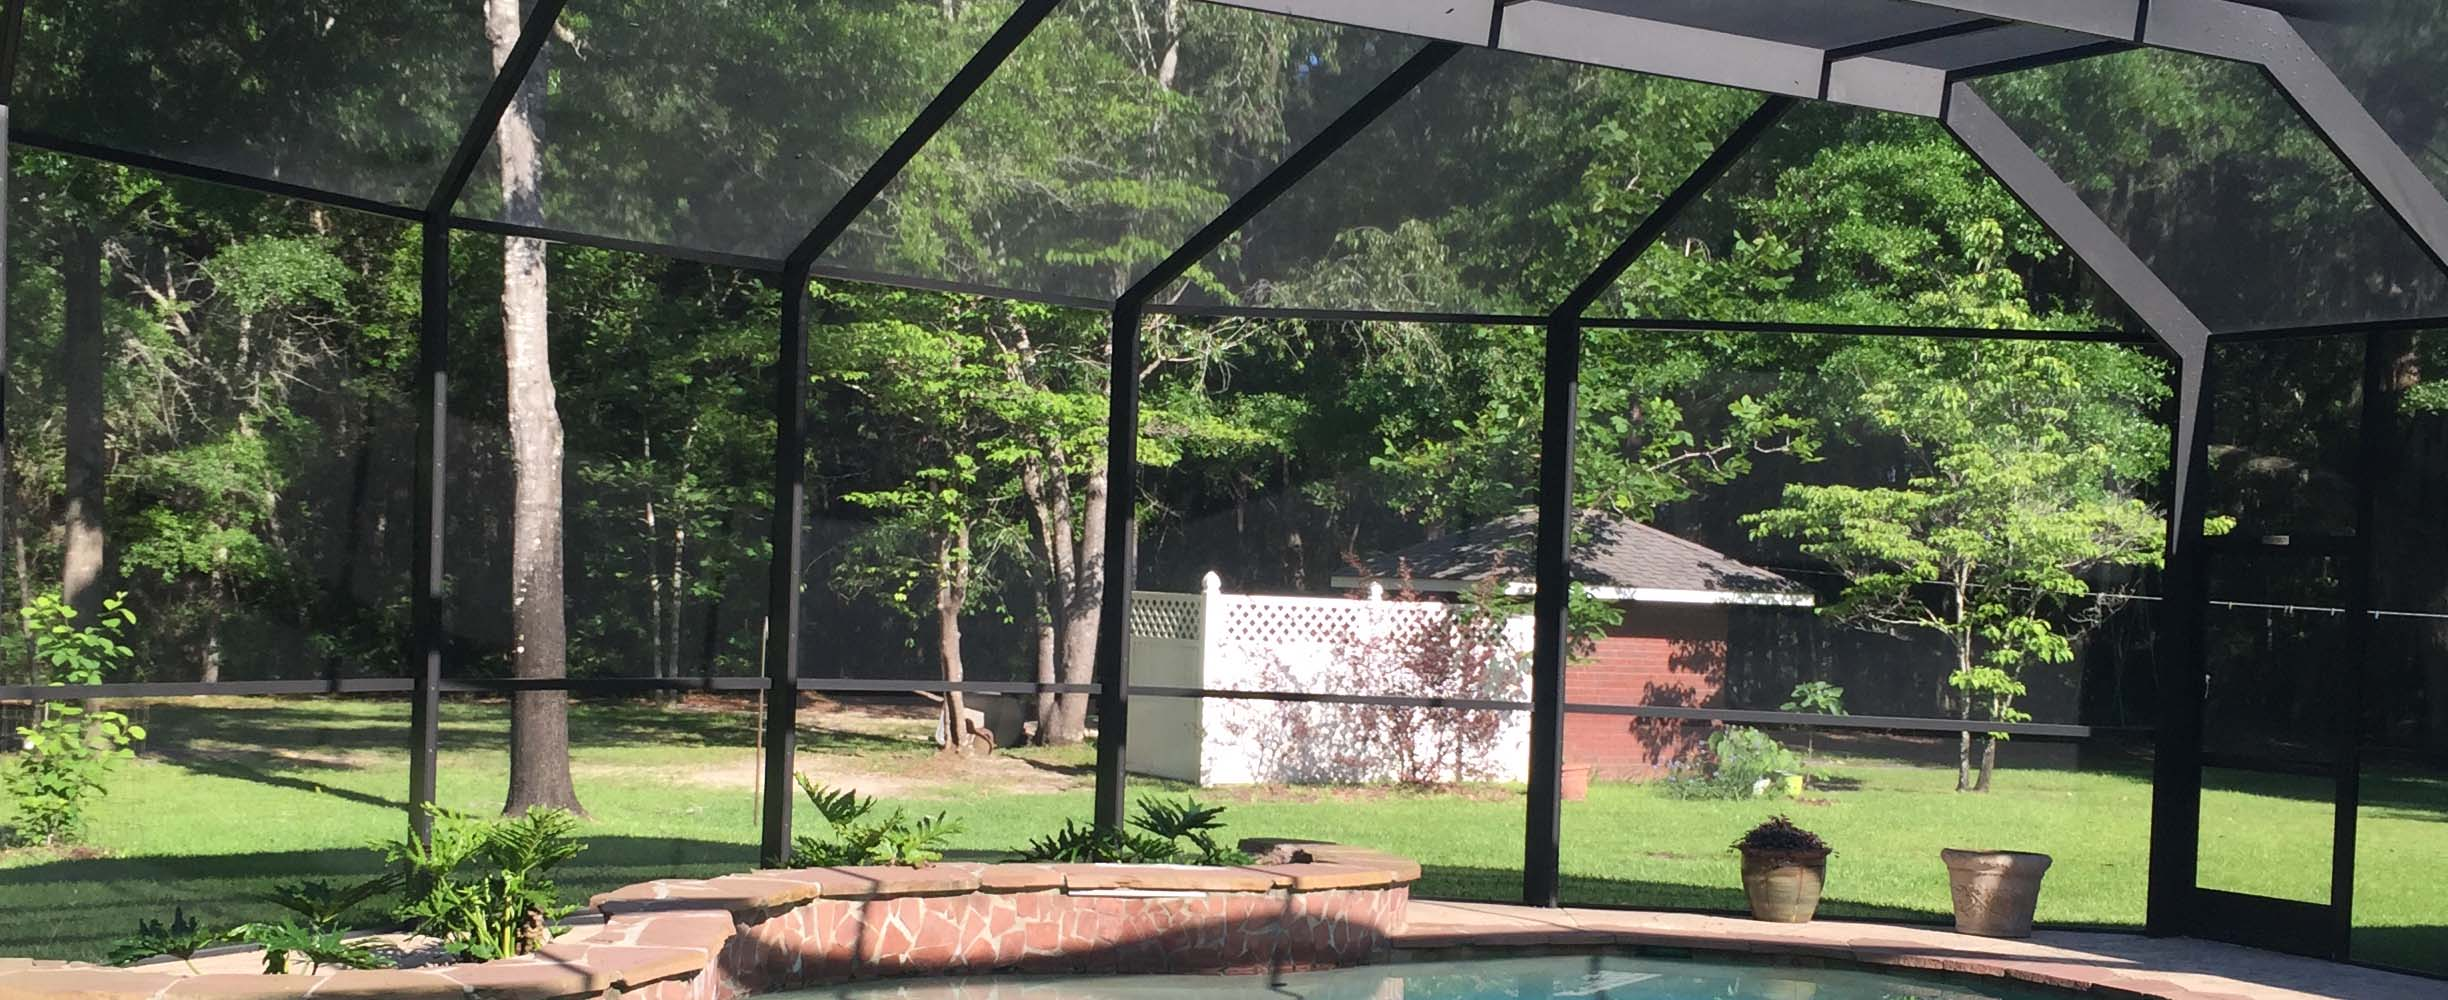 Pool enclosure with black aluninum and modern materials and structure that stands typical Southern high winds and weather